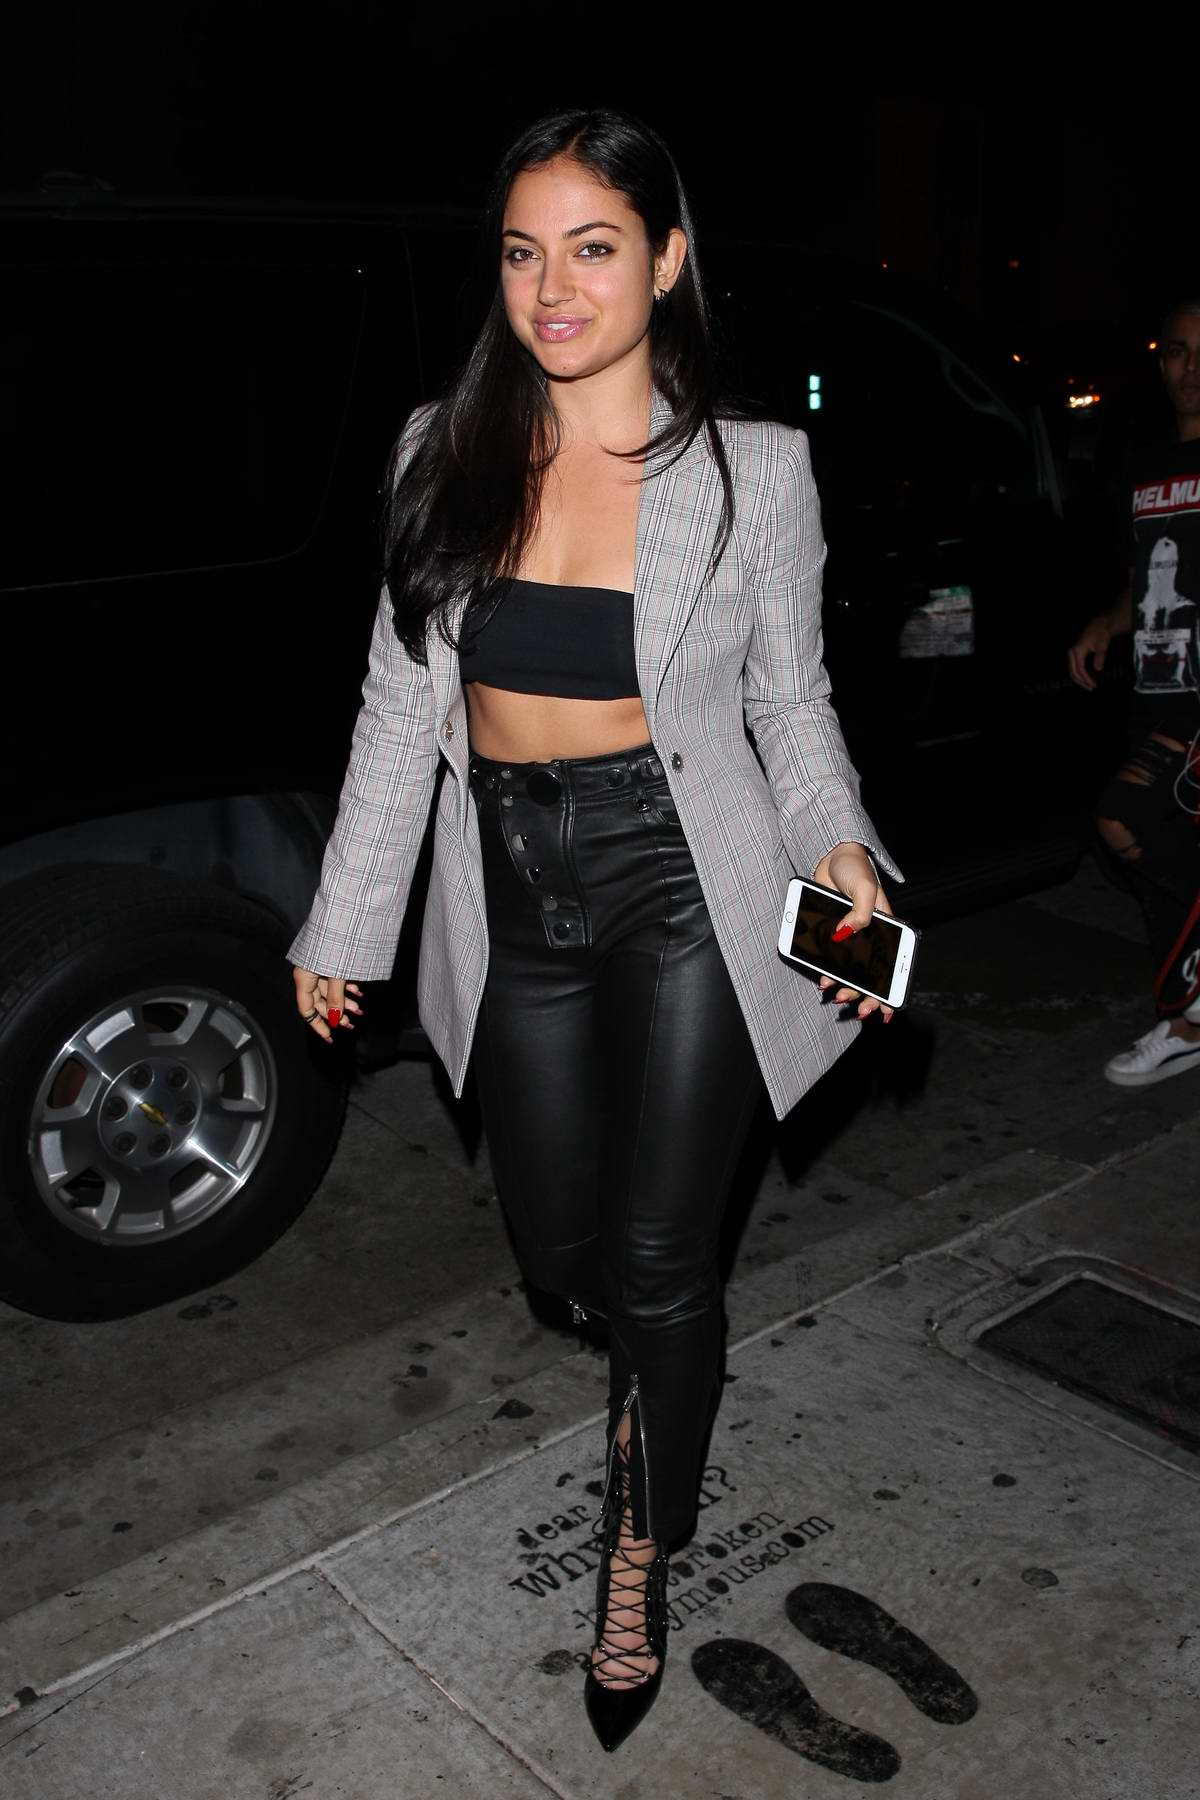 Inanna Sarkis wears a grey blazer jacket as she heads to Catch restaurant in West Hollywood, Los Angeles